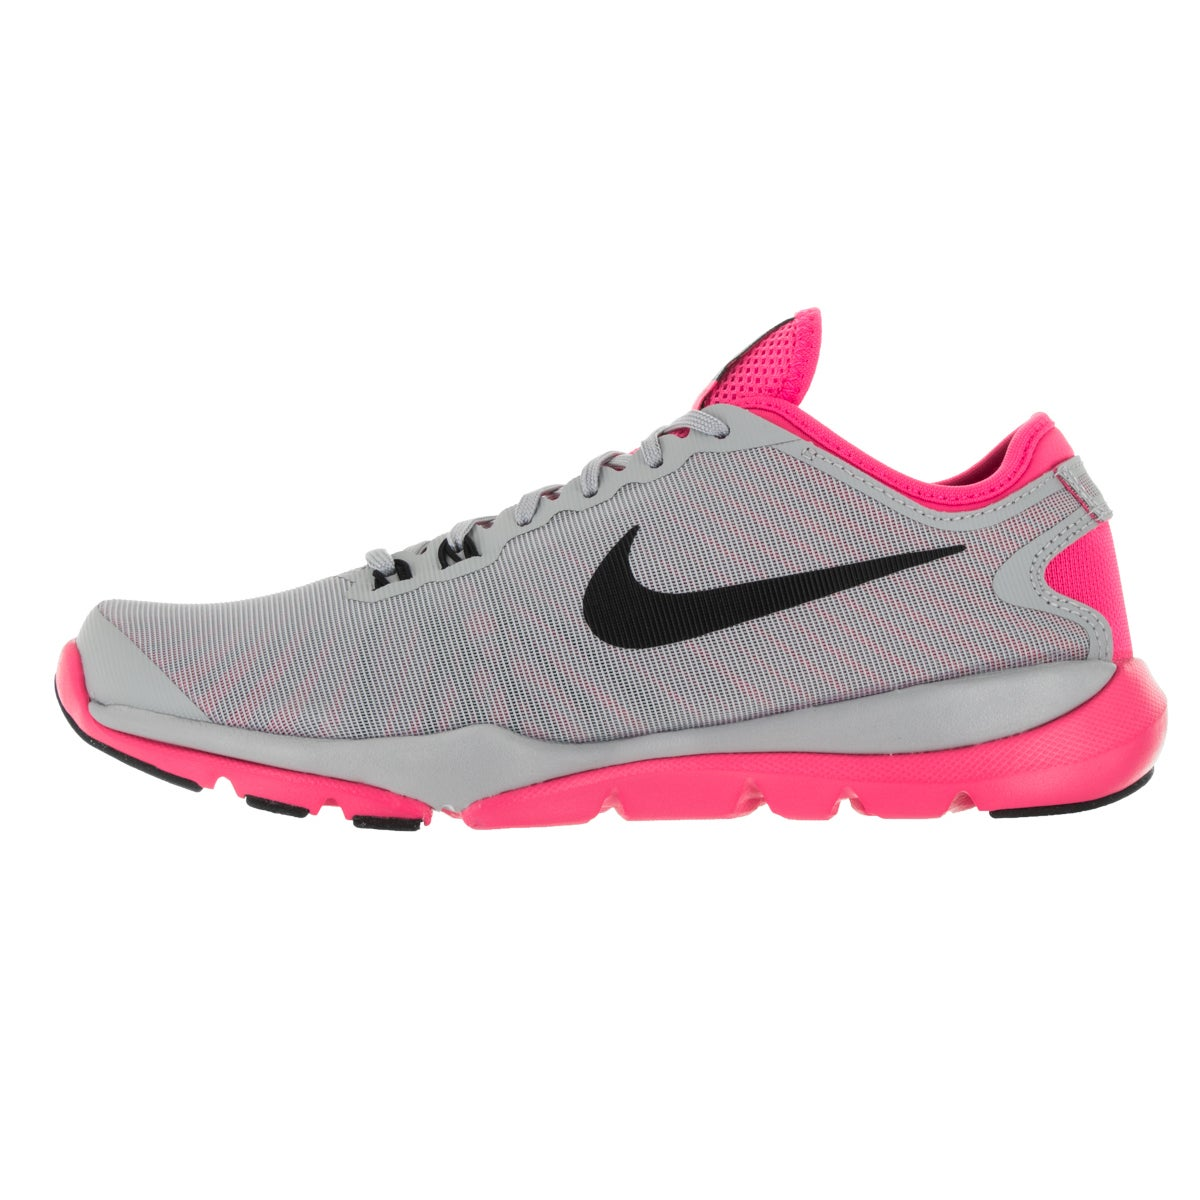 fc34c0776 Shop Nike Women's Flex Supreme Tr 4 Wolf Grey, Black, and Pink Textile Training  Shoes - Free Shipping Today - Overstock - 13313191